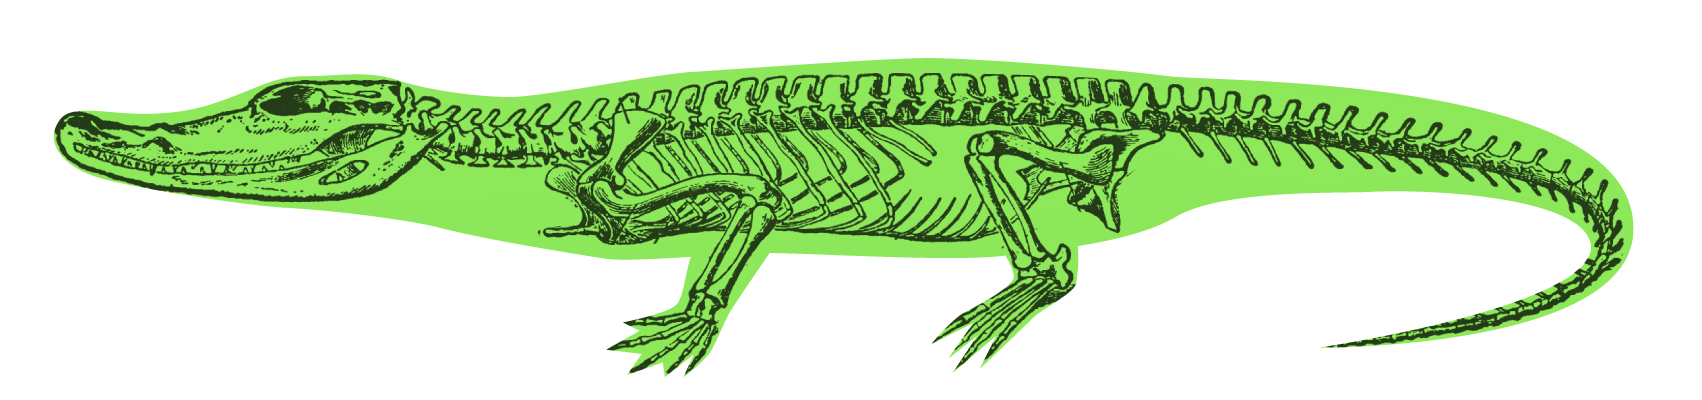 Guest Post Crocodiles From The Freezers Stiff Spines And Strong